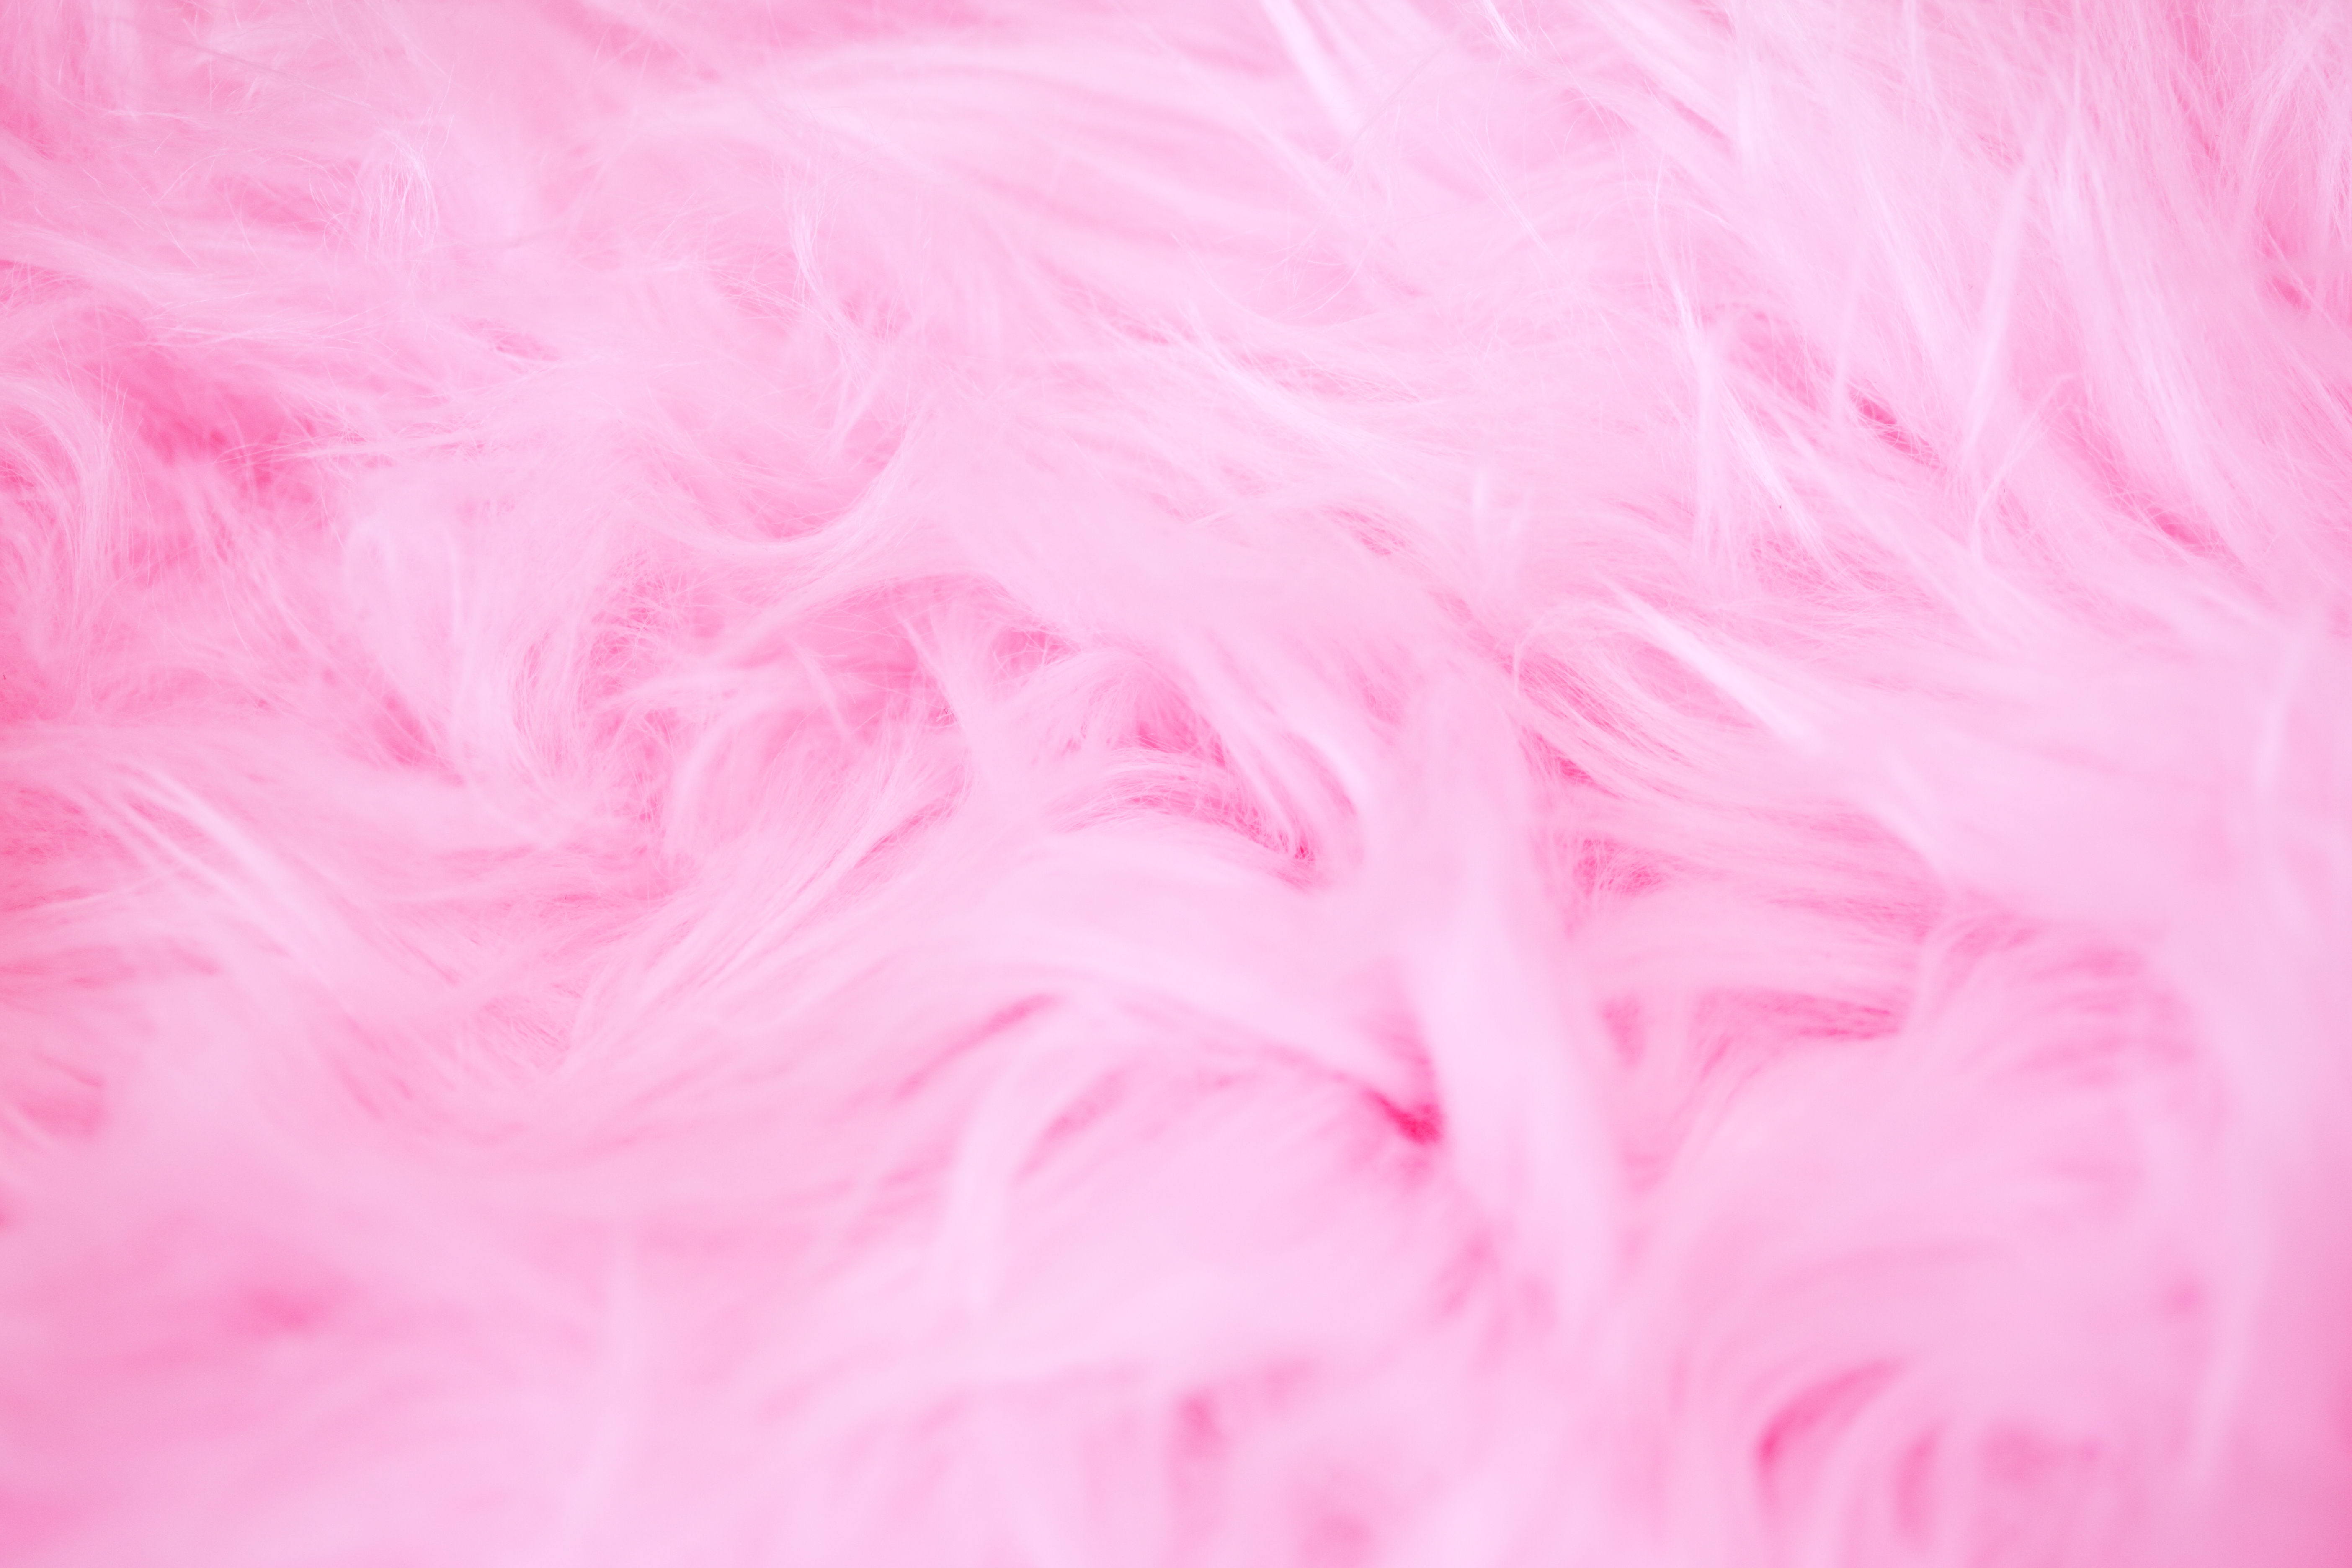 Pink Furry Wallpaper The 12 Reasons Tourists Love Pink